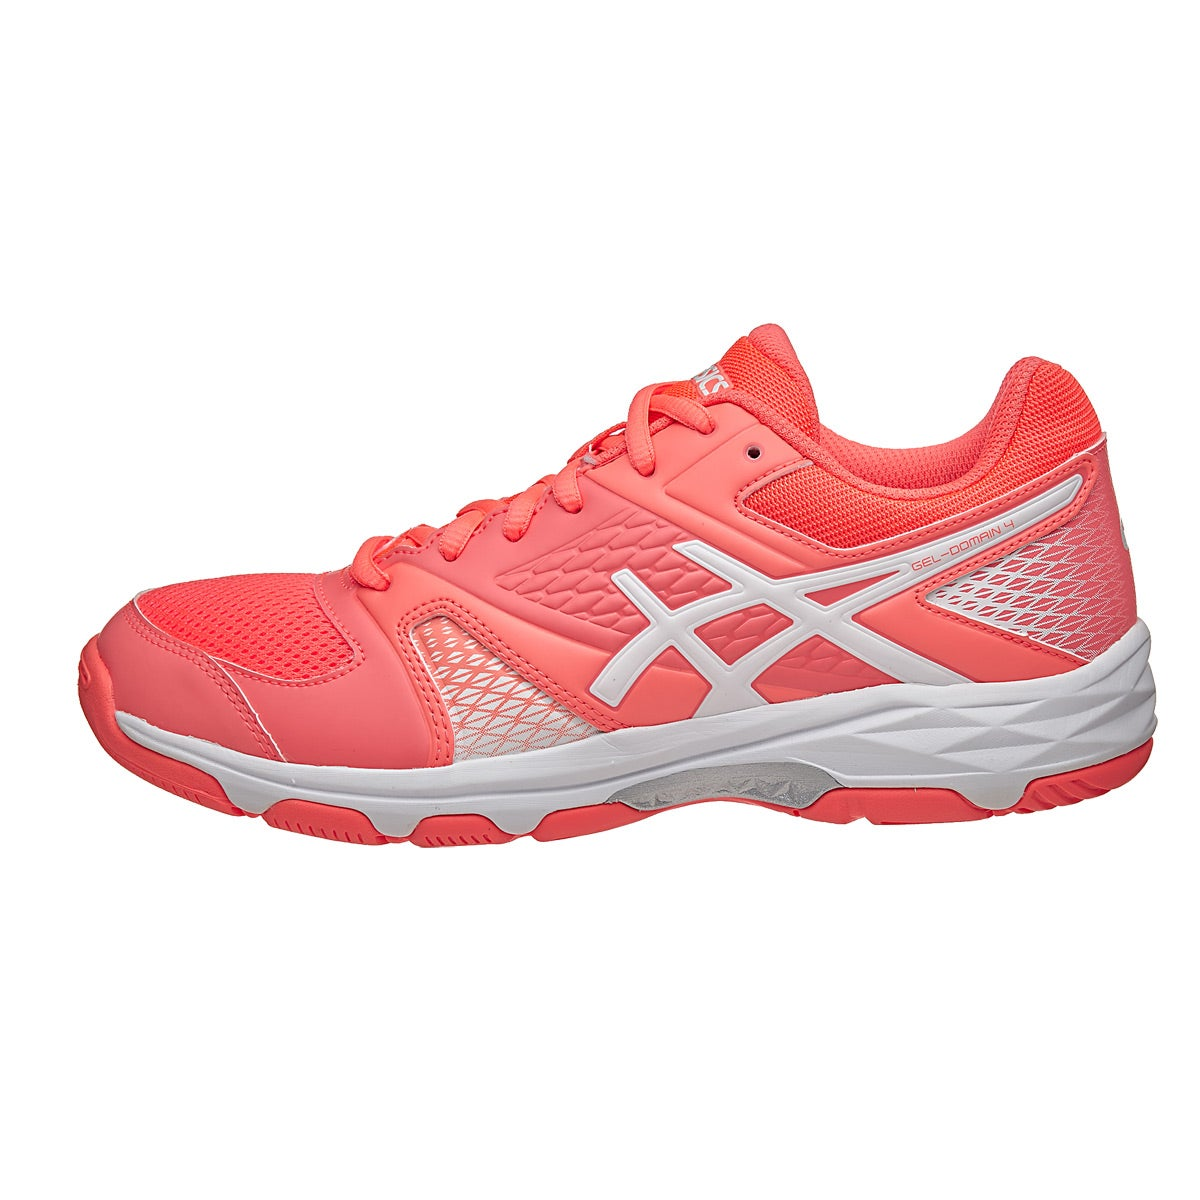 Shoes For Women S Tennis